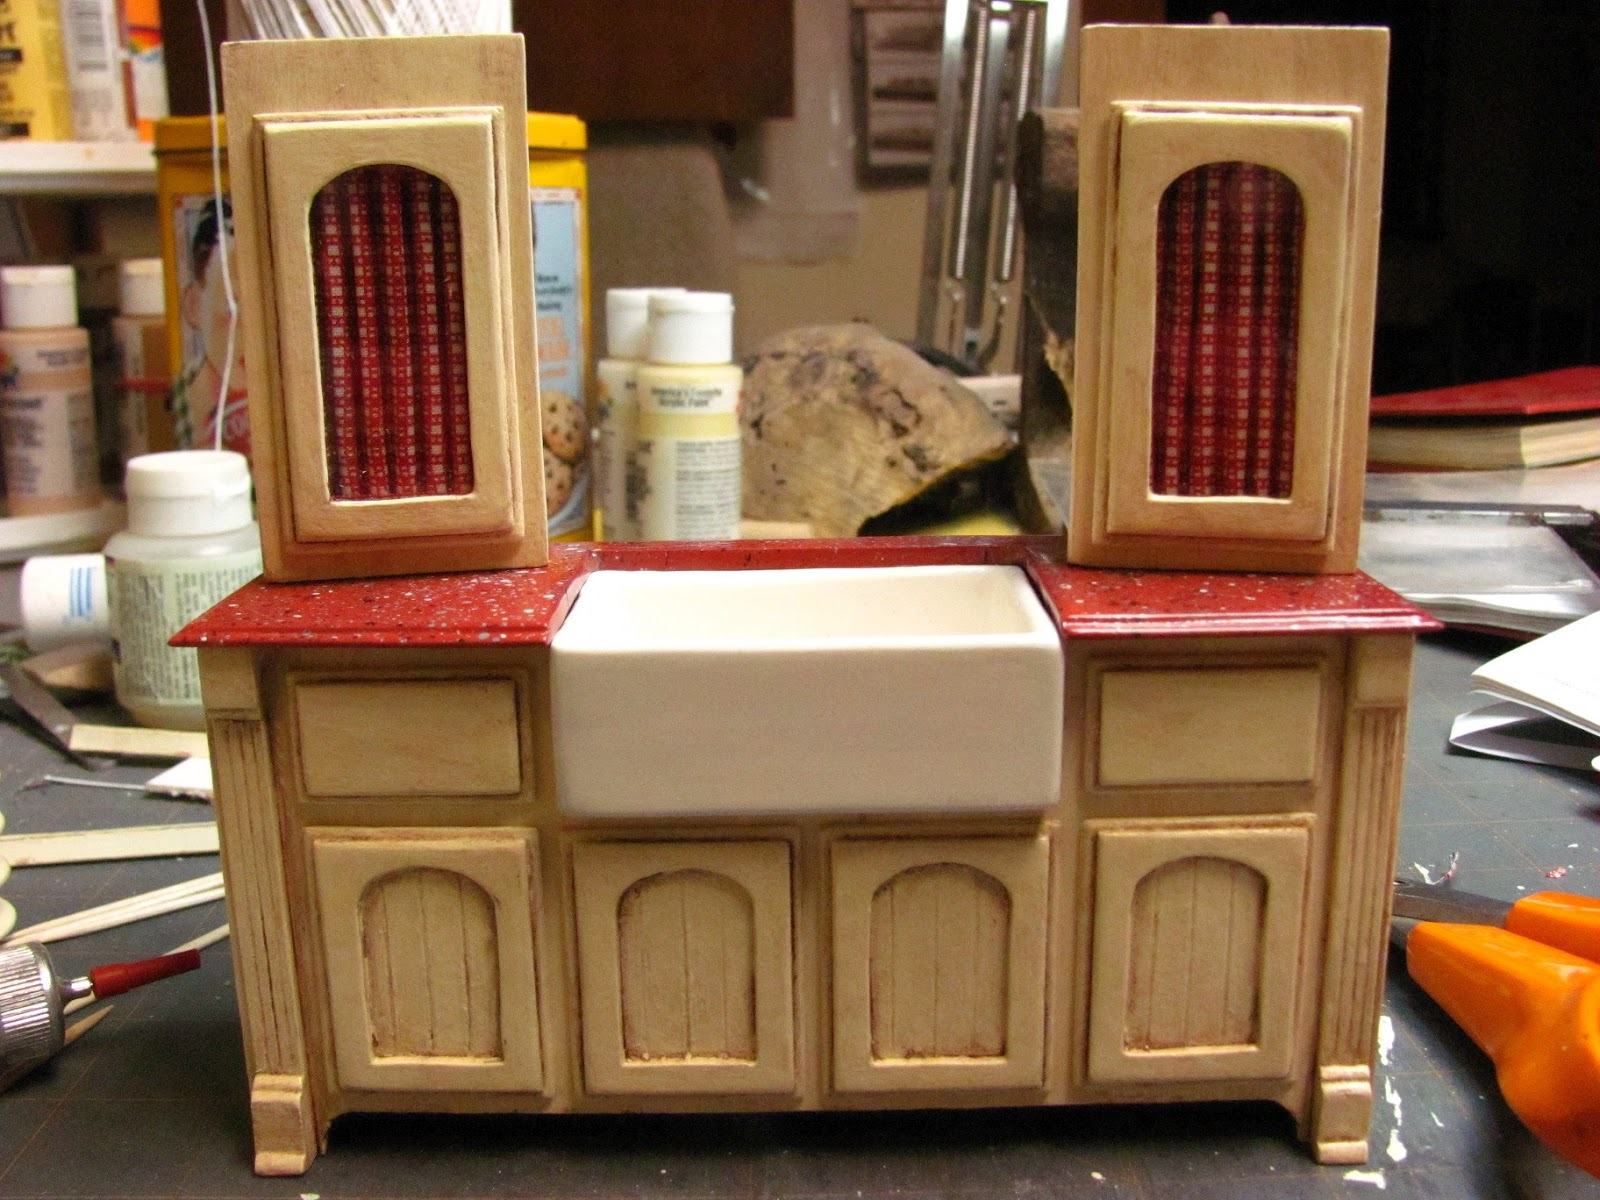 1 Inch Minis: KITCHEN CABINETS - How To Make